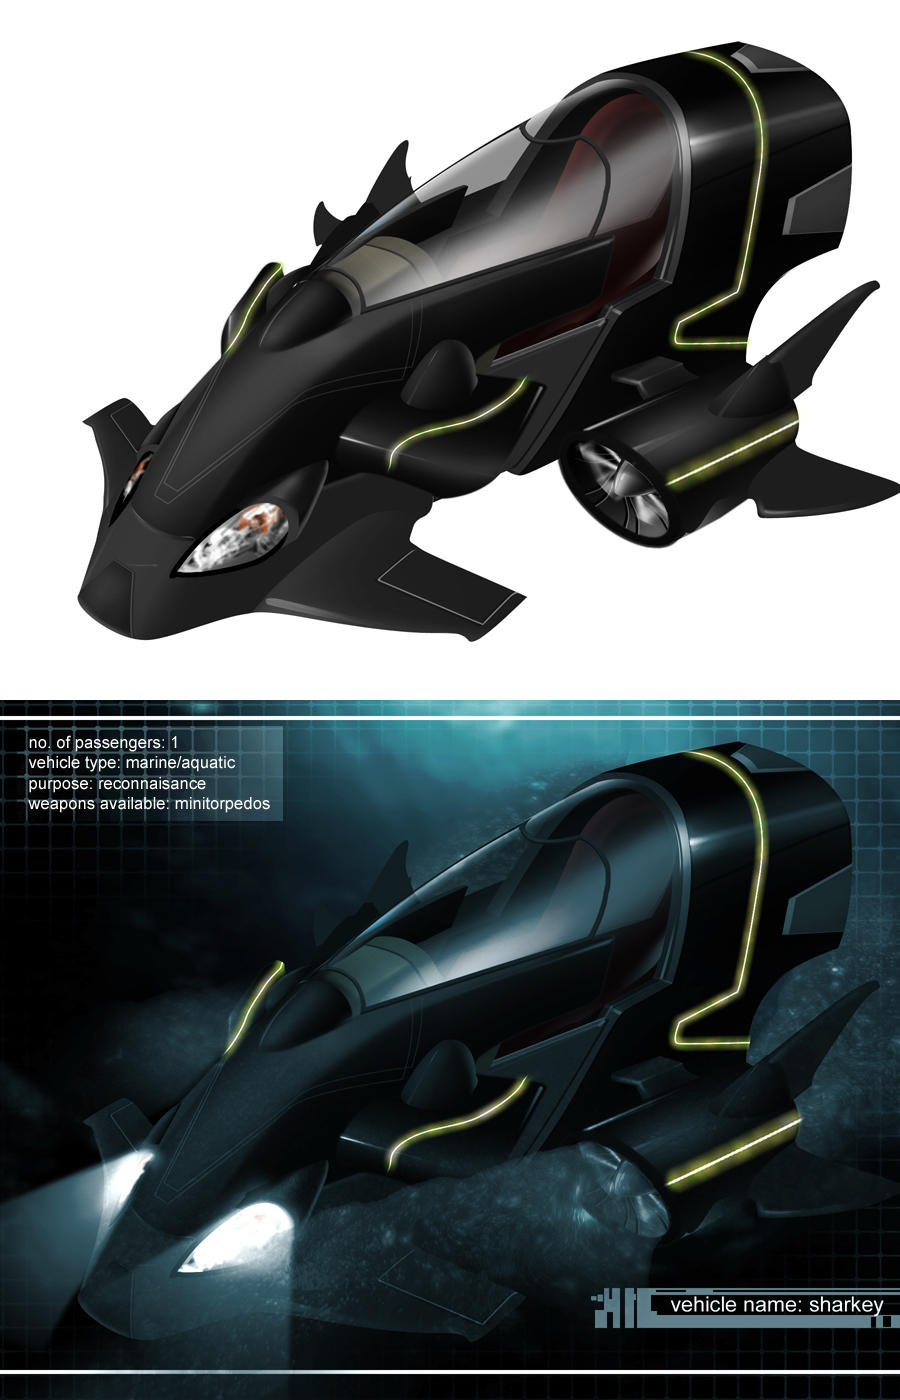 Sharkey vehicle design by dylanliwanag